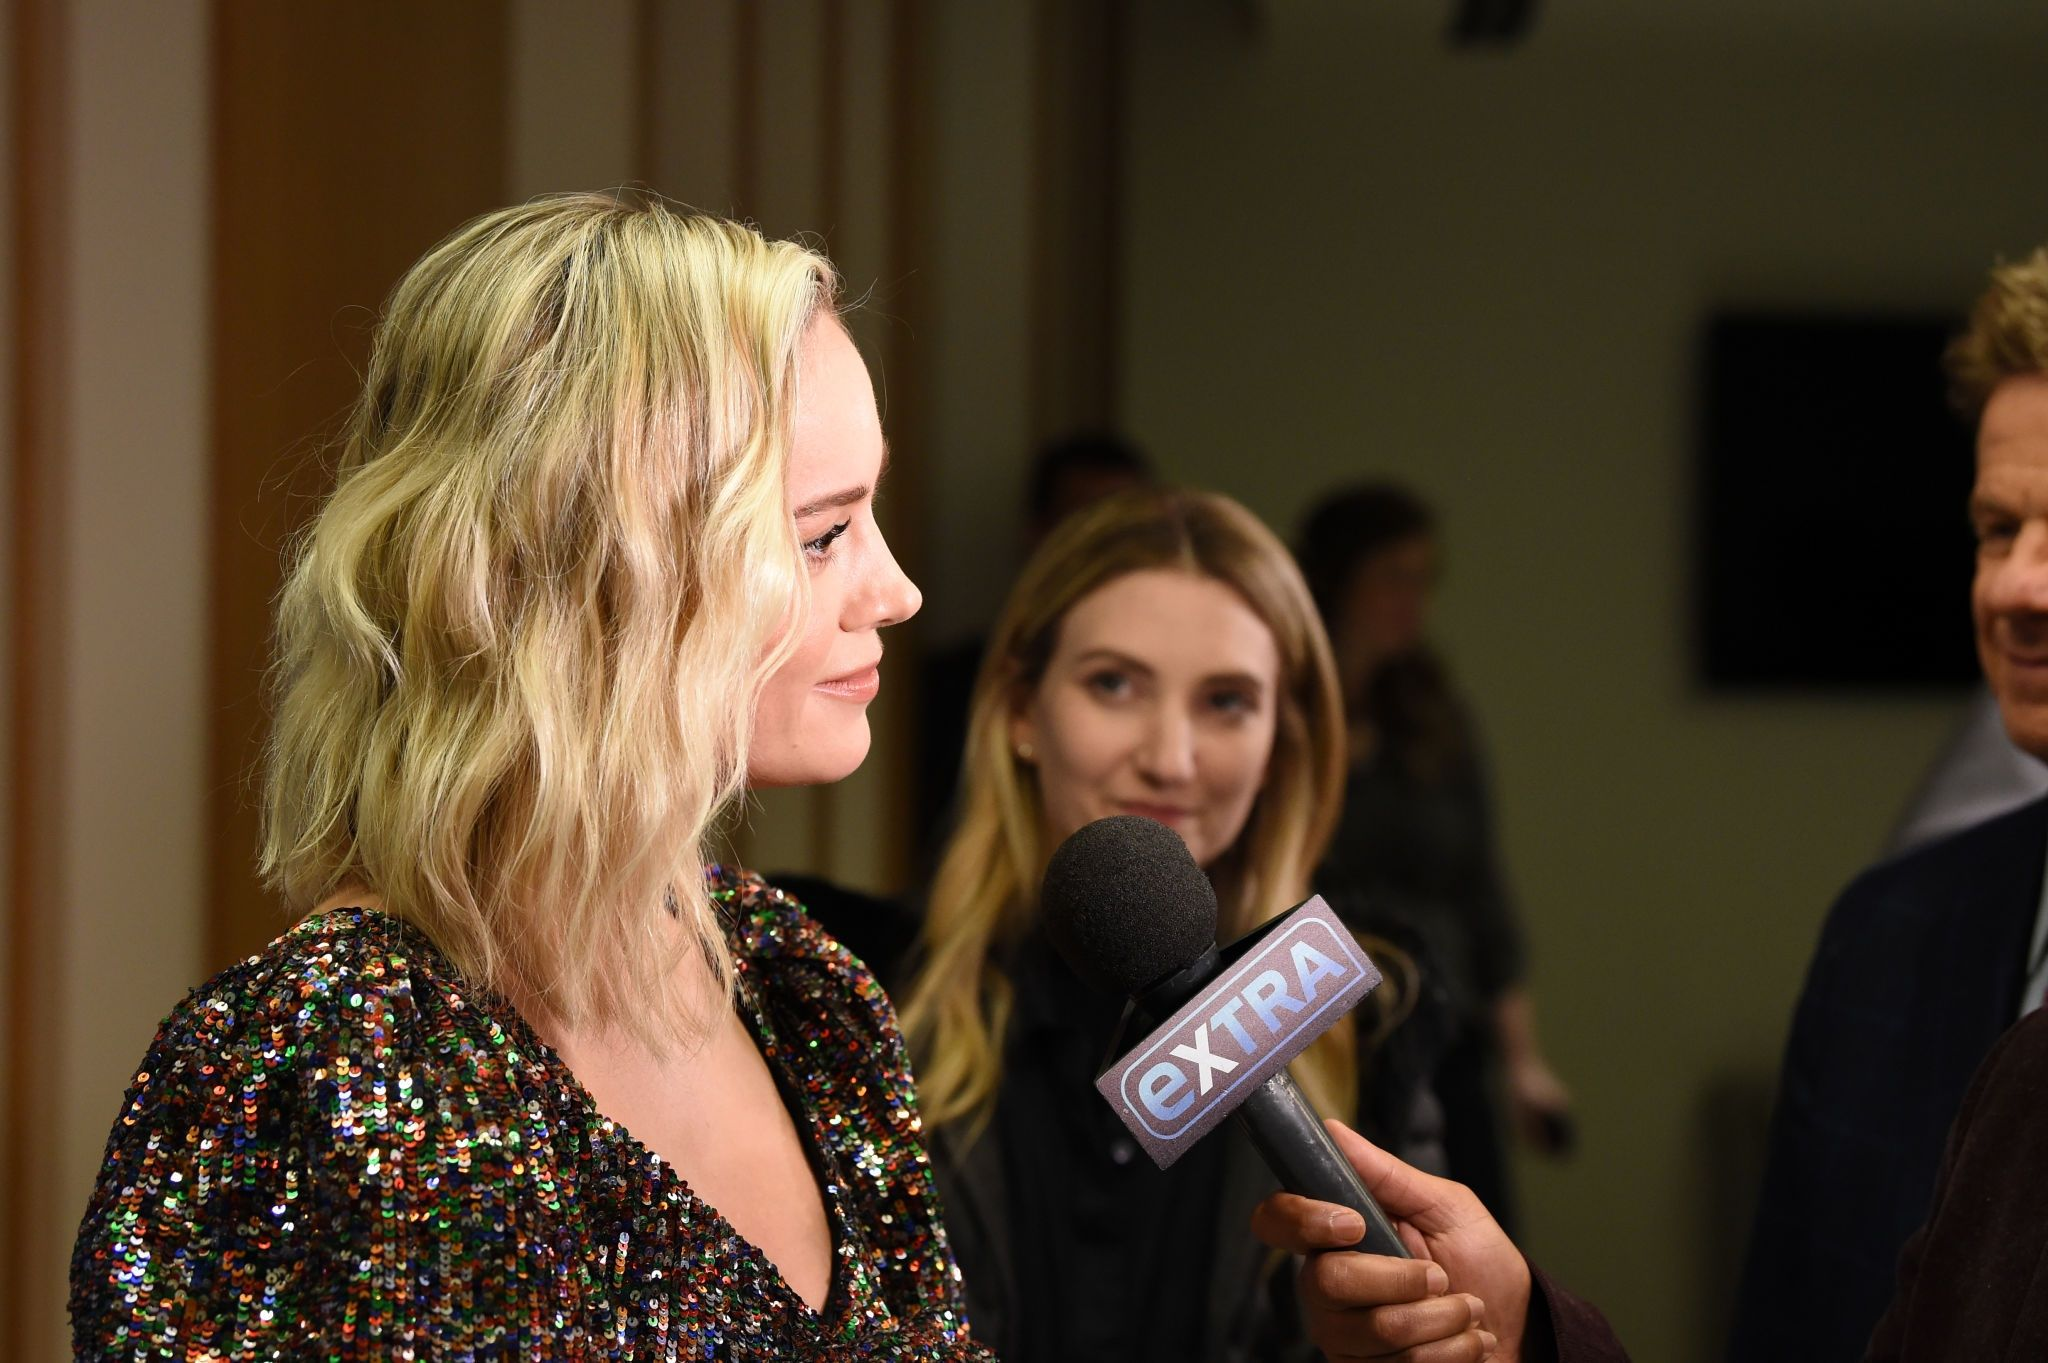 Brie Larson with new hairstyle at the 'Captain Marvel' Premiere, 2019